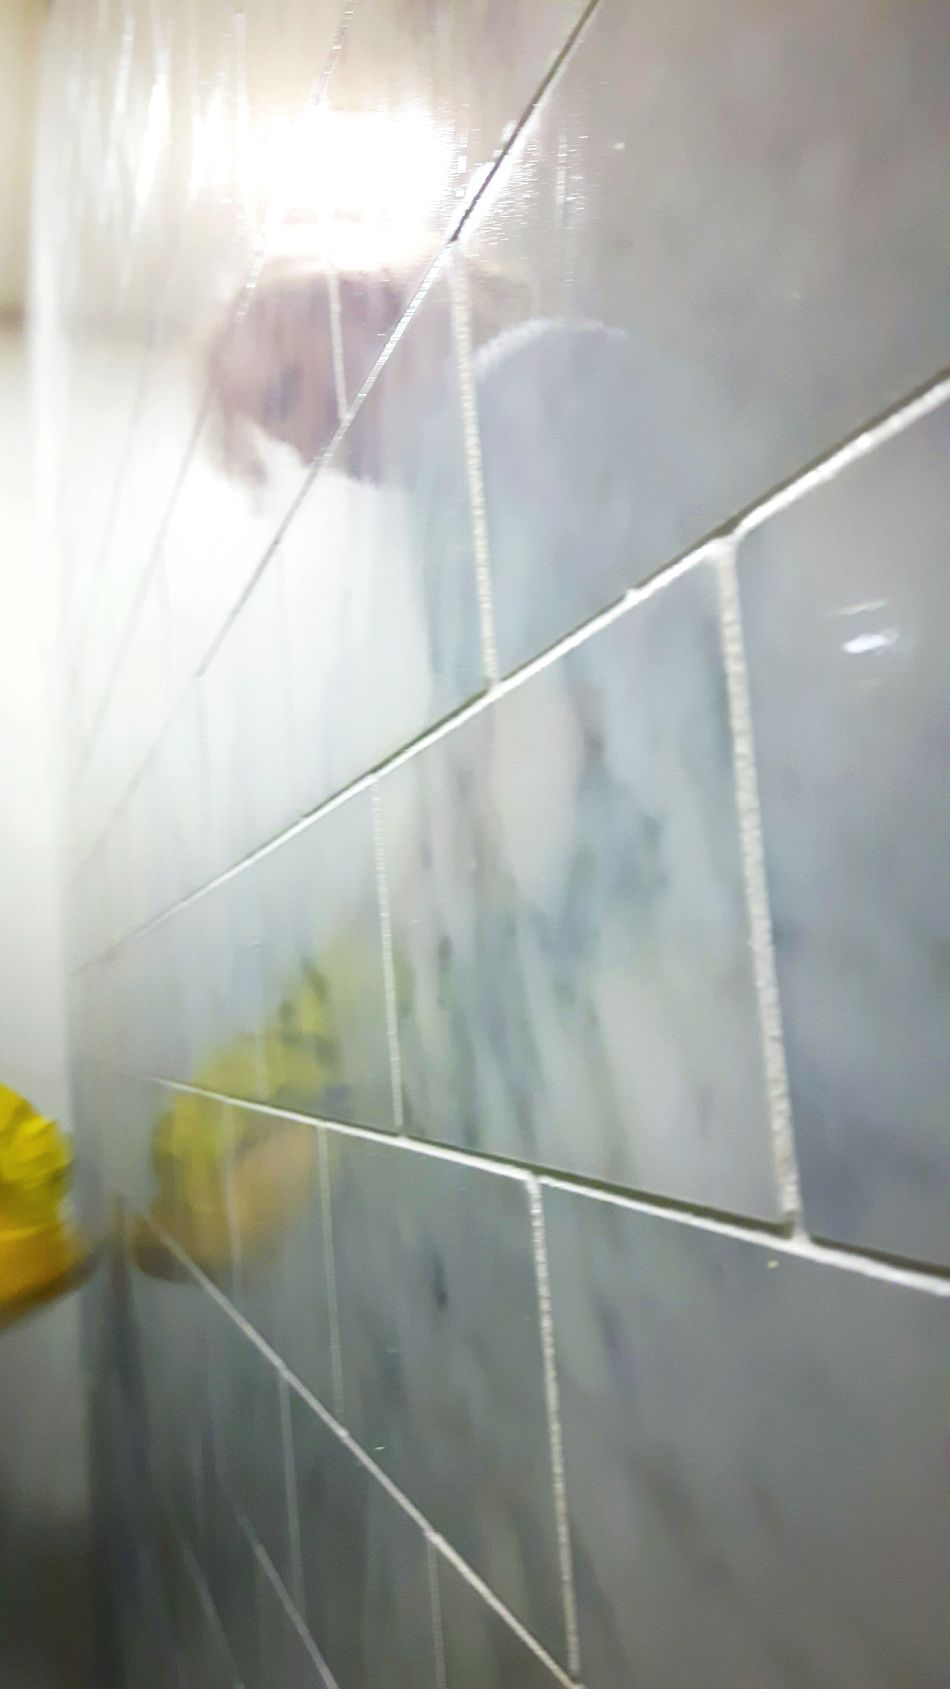 Reflection Tiled Wall Grout